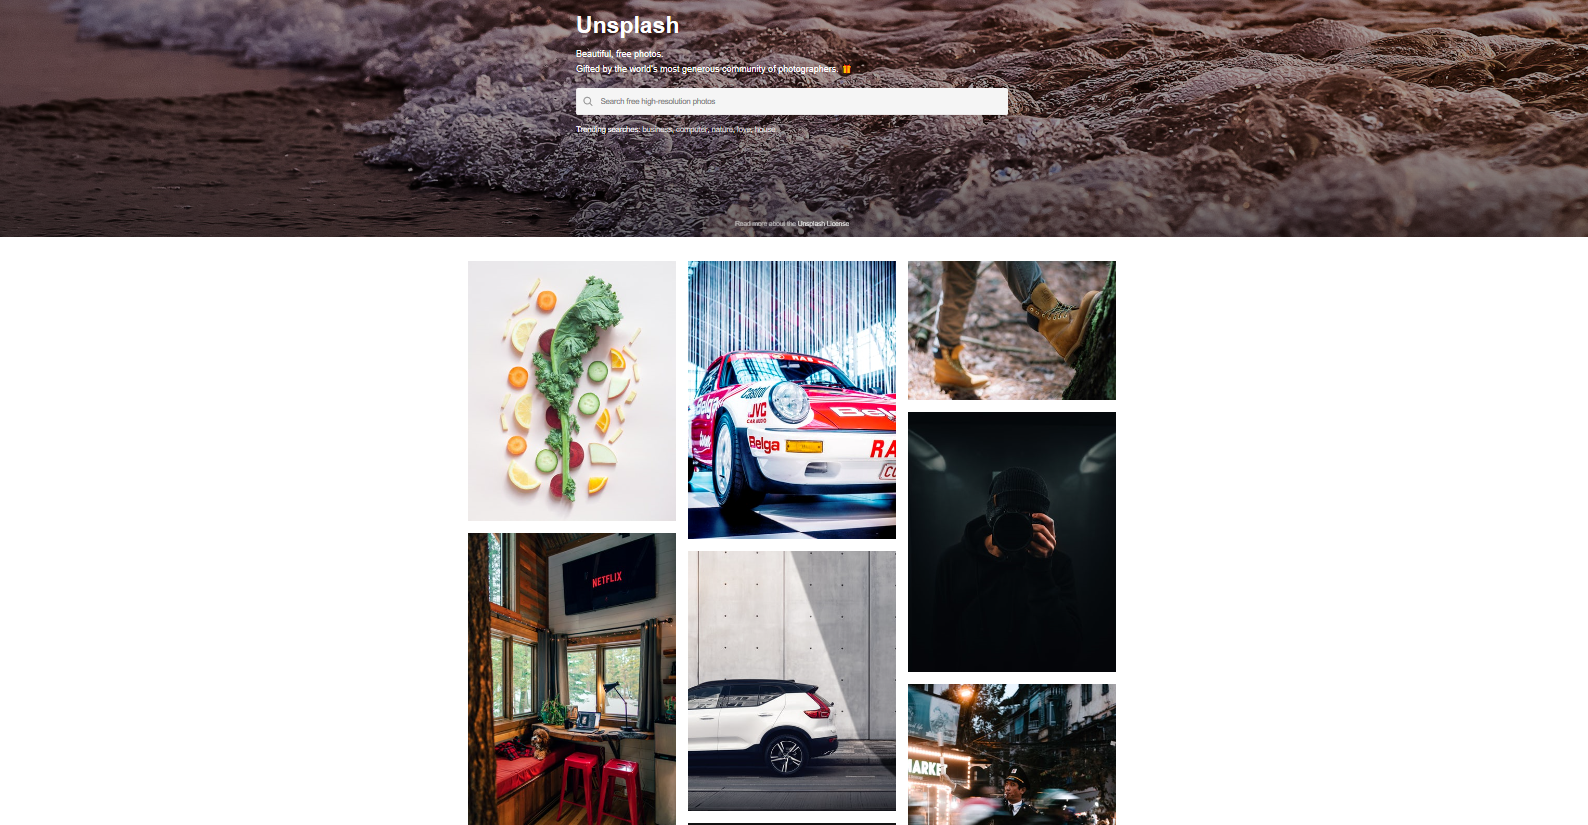 Unsplash is a free stock image resource for content and web designers.